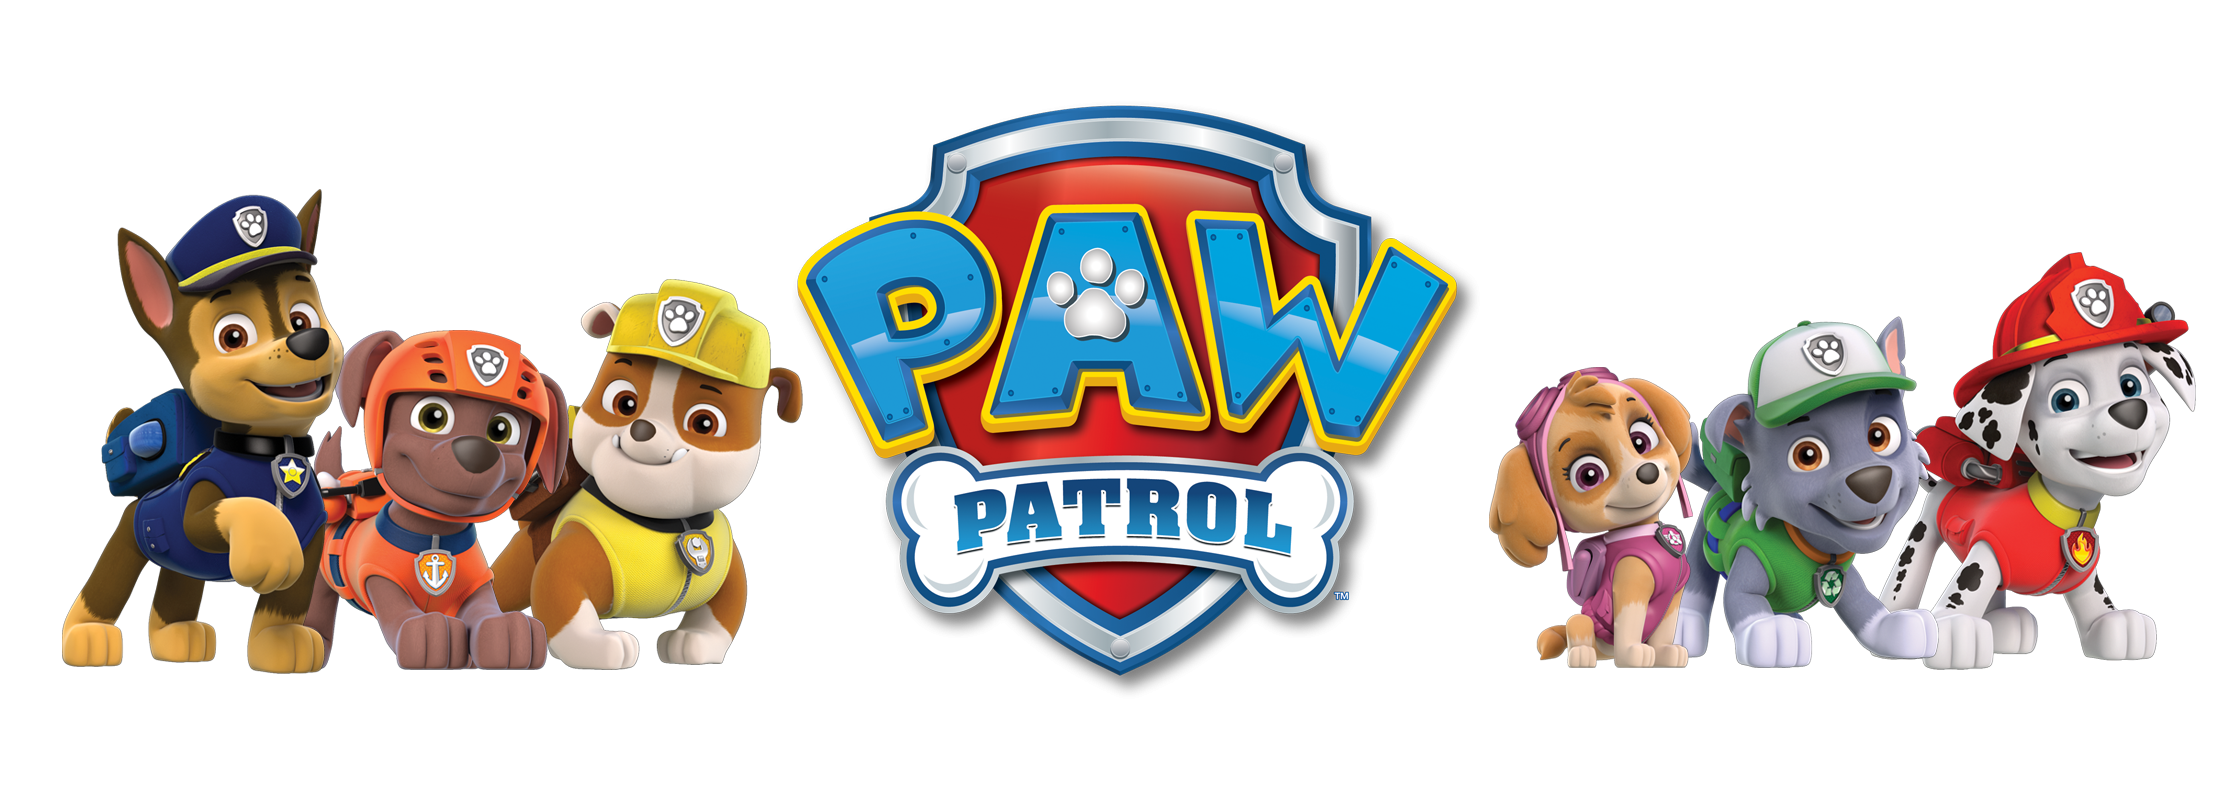 Paw patrol clipart without a background image free download Paw Patrol Transparent PNG Pictures - Free Icons and PNG Backgrounds image free download